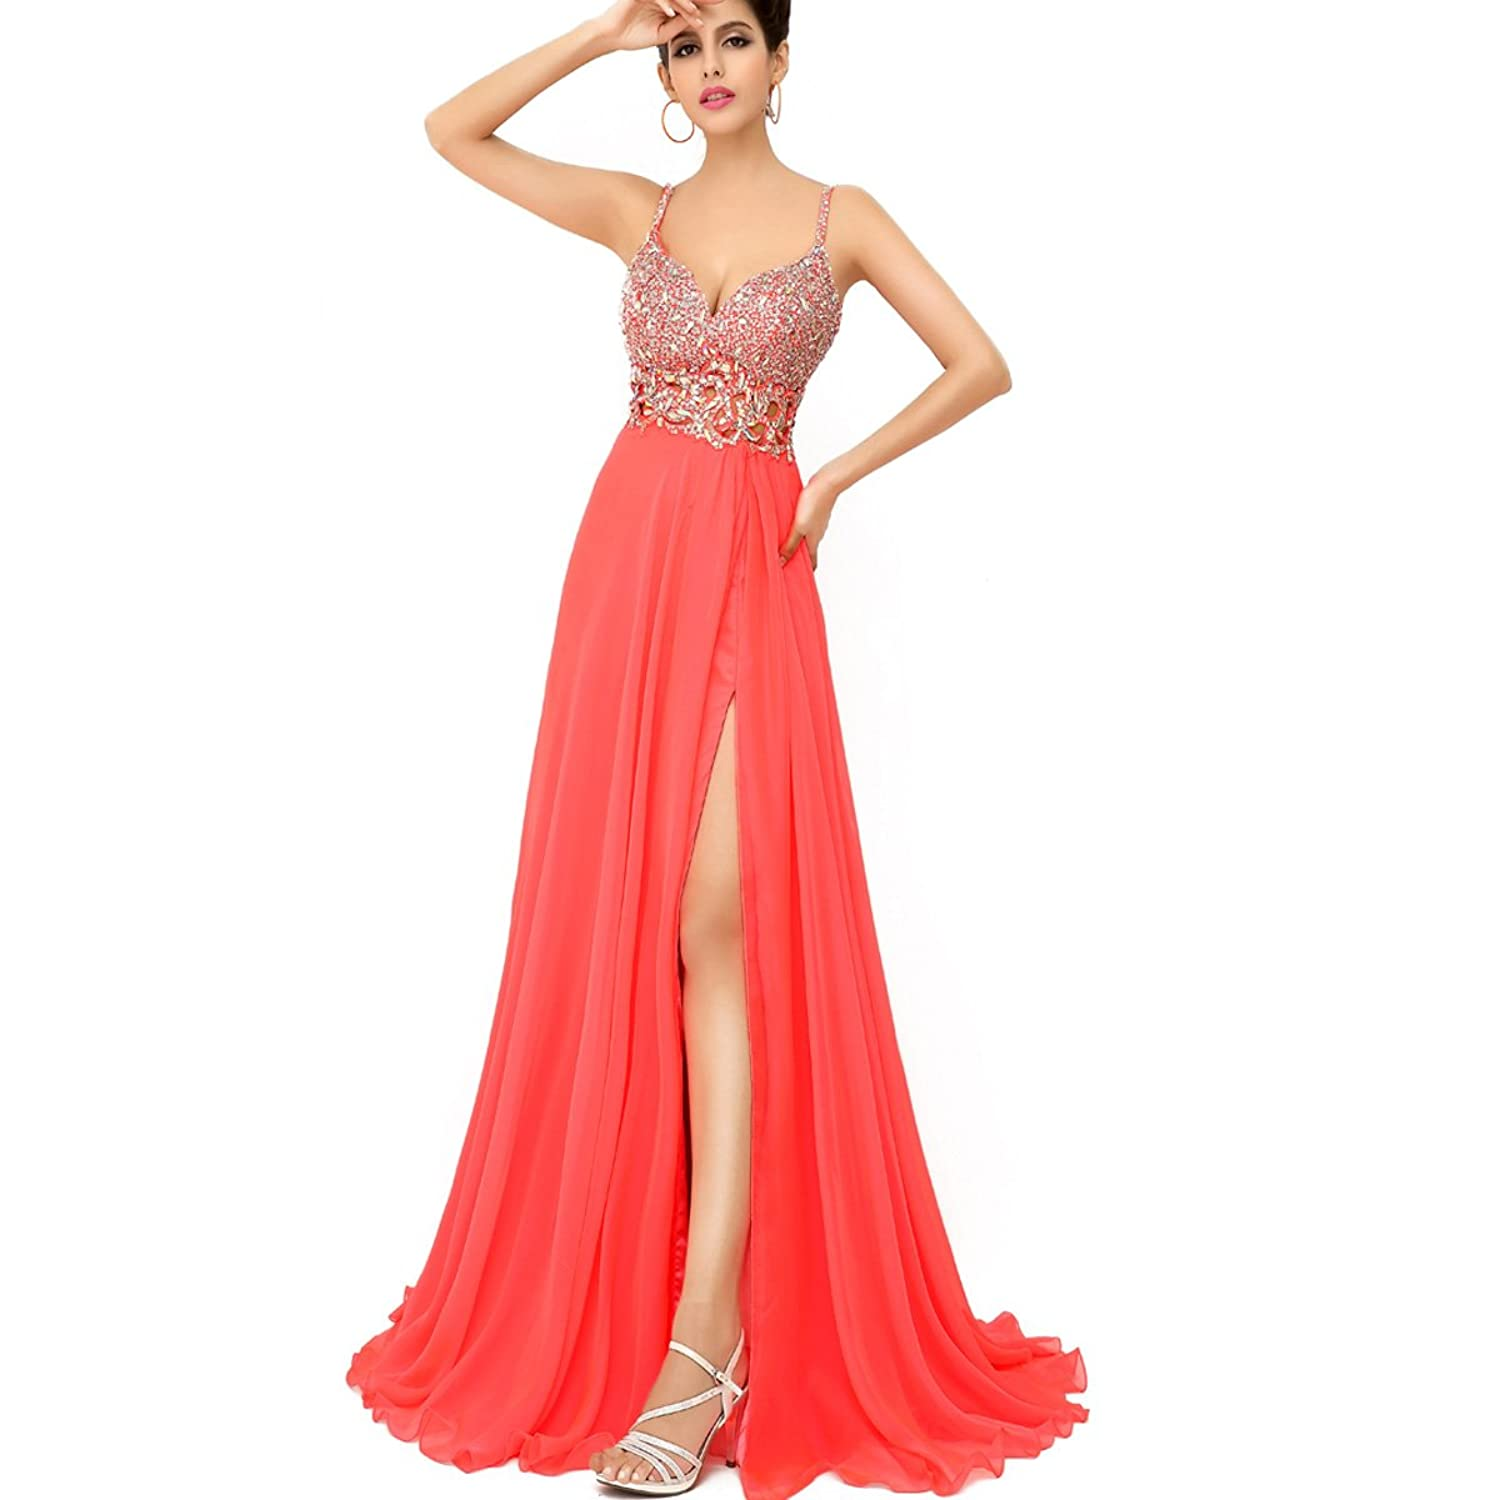 Sarahbridal Women's Long Split Side Spaghetti Strap Evening Prom Dress Sequins Chiffon Beaded Dresses Hollow Party Gowns SXU015